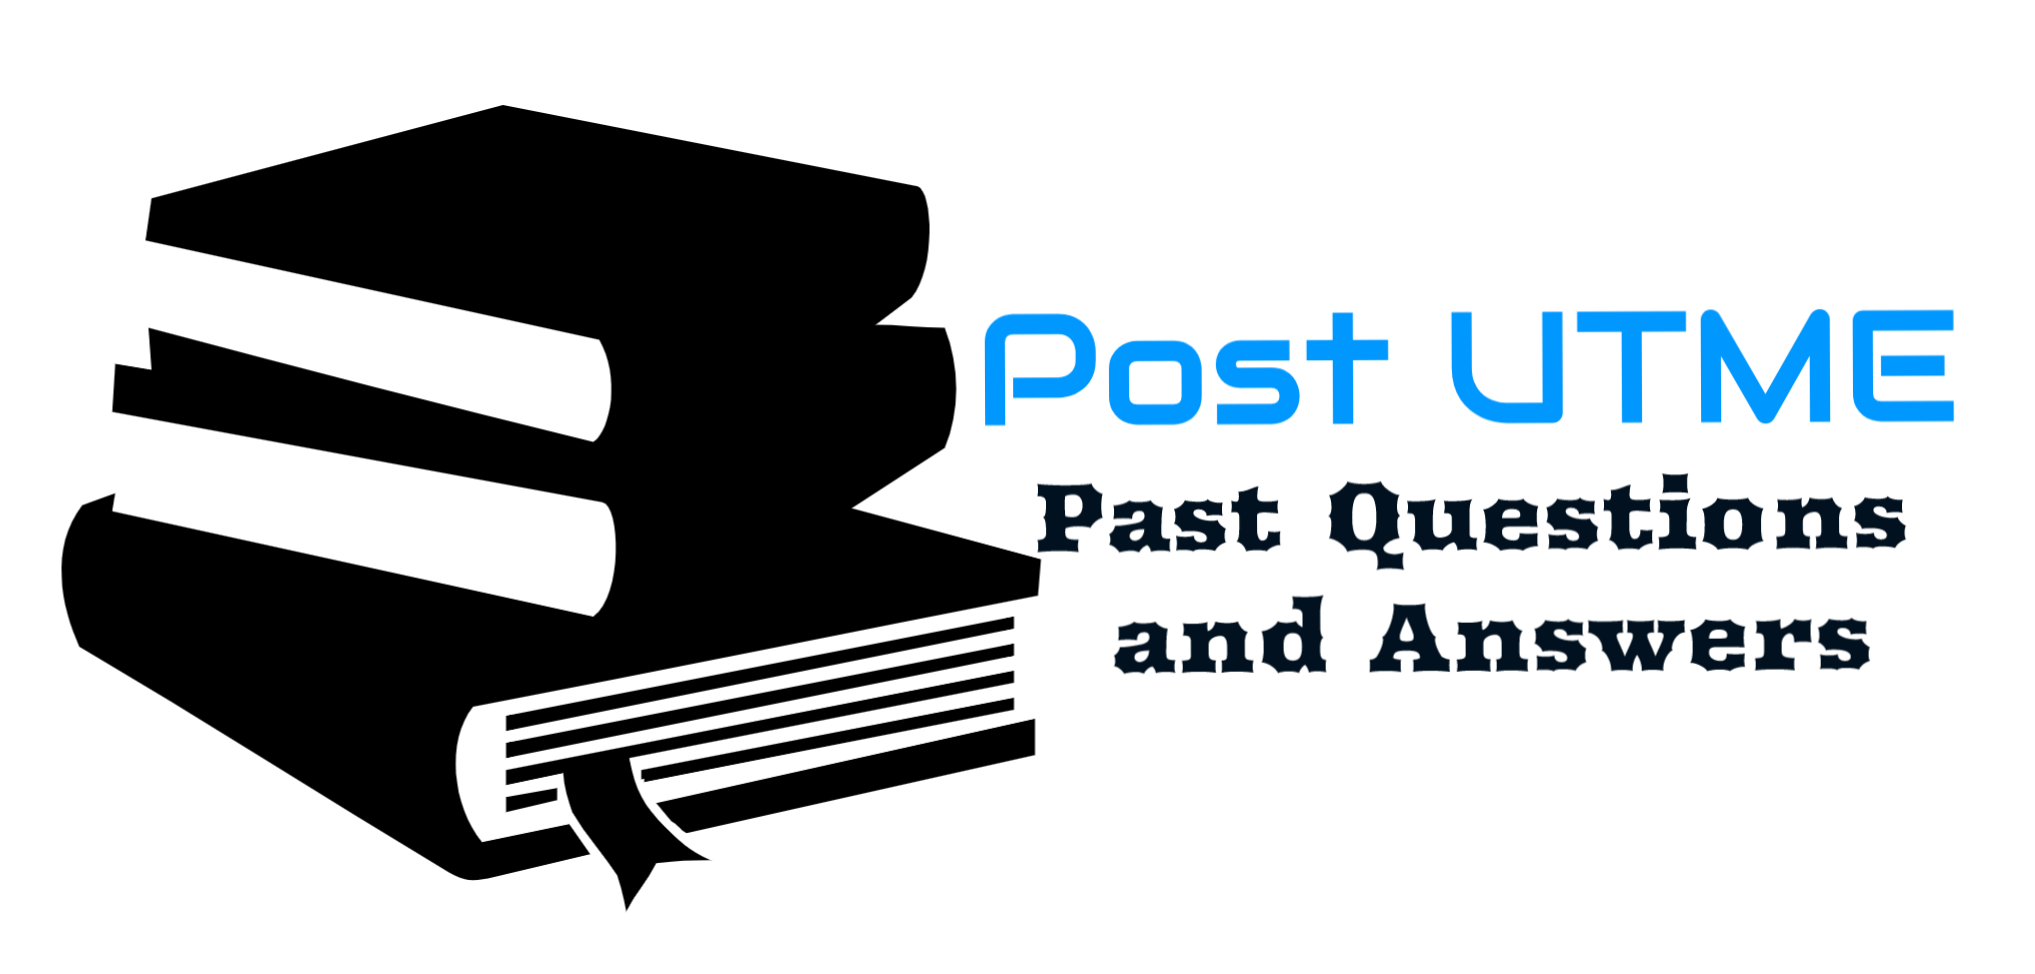 GSU POST UTME PAST QUESTIONS AND ANSWERS (PDF) – CSN PDF Sales Page